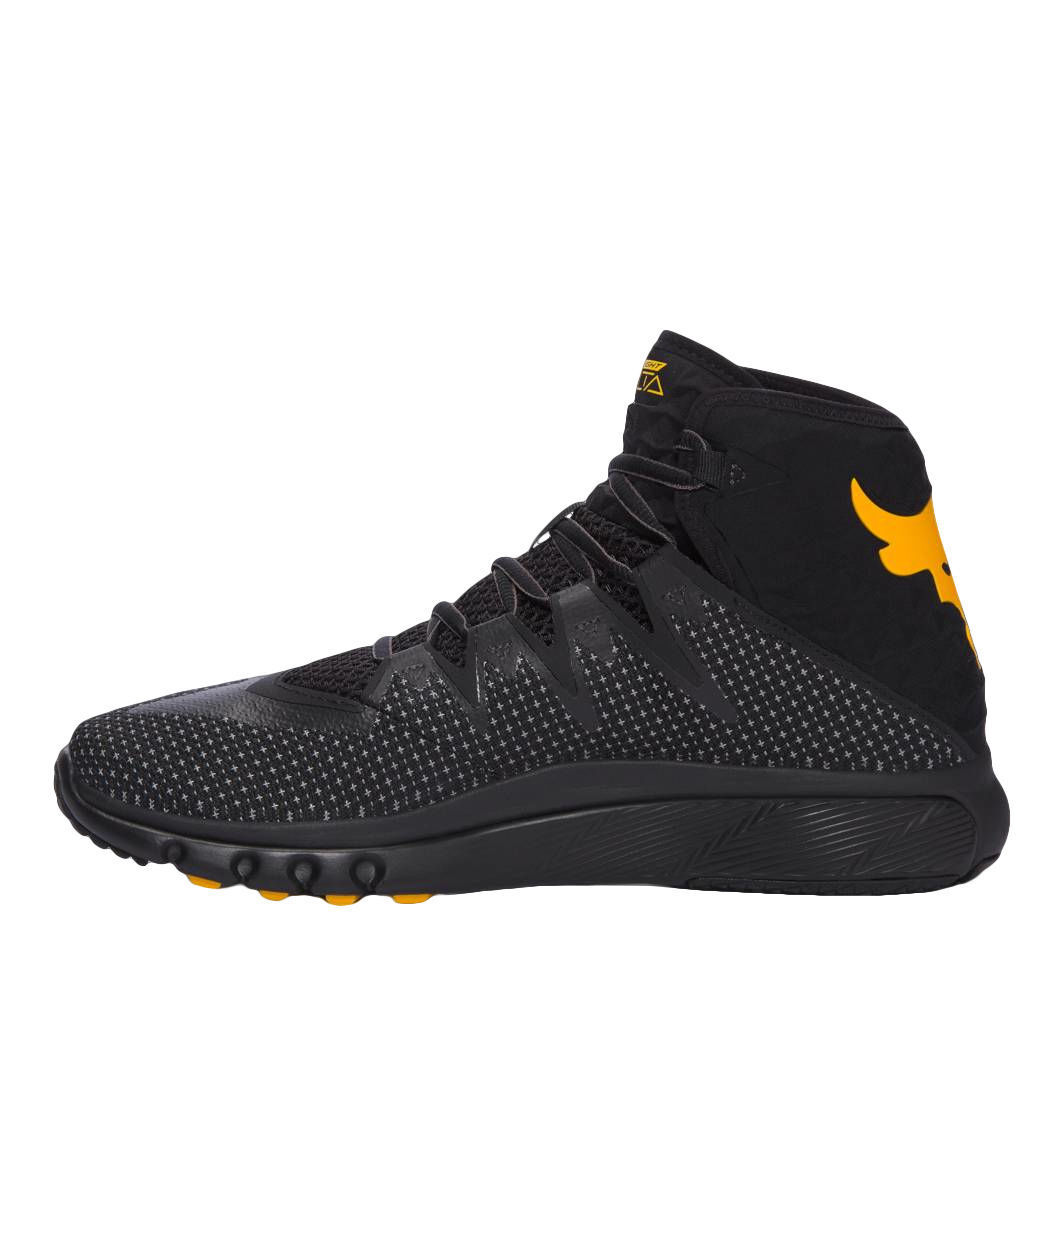 c8ed835f3 Under Armour Project Rock Delta Charcoal Black Men s Training Shoes ...